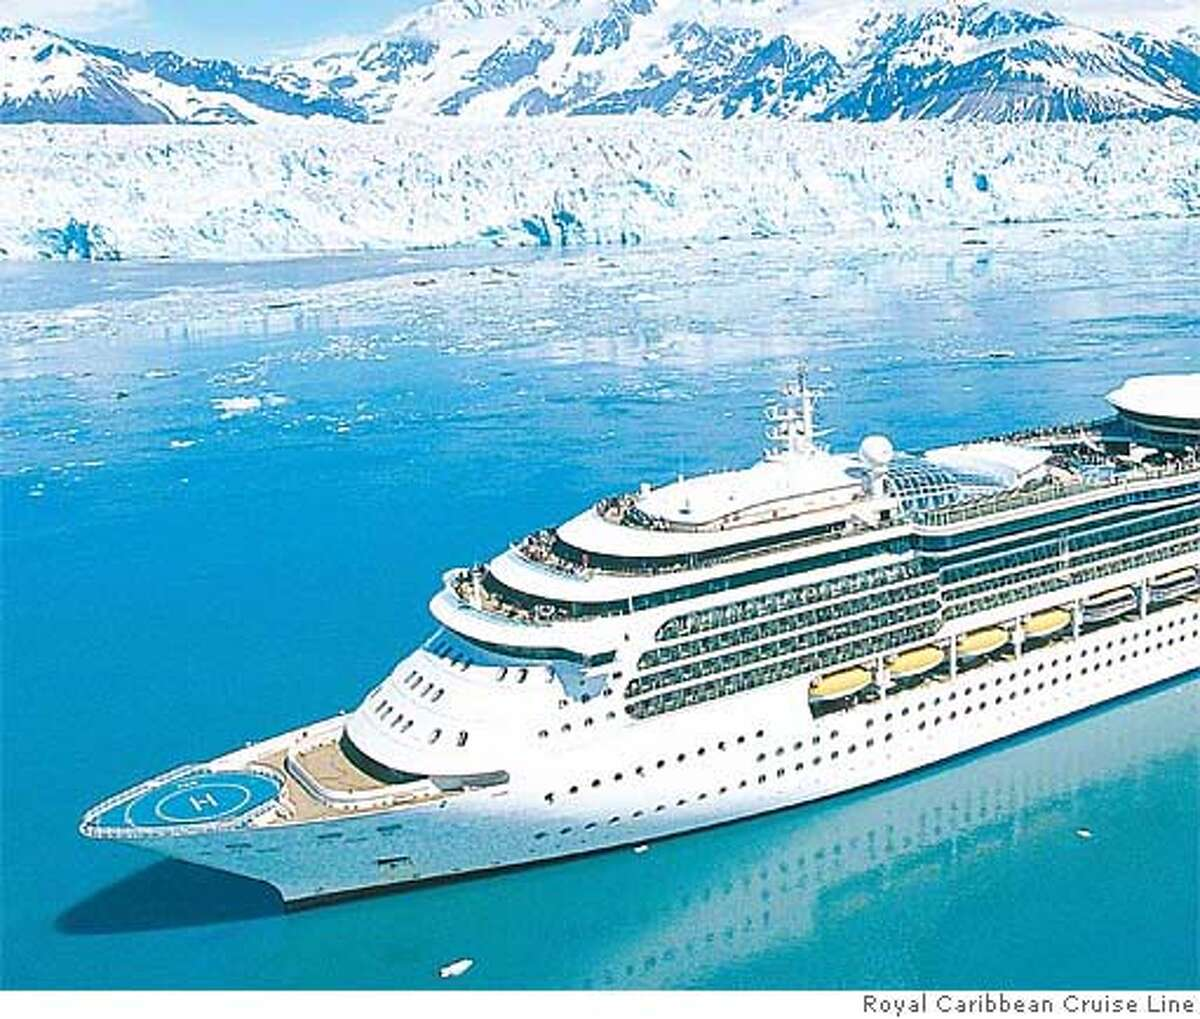 Large cruise ships are popular, offering variety in dining, entertainment and lodging. Photo courtesy of Royal Caribbean Cruise Line